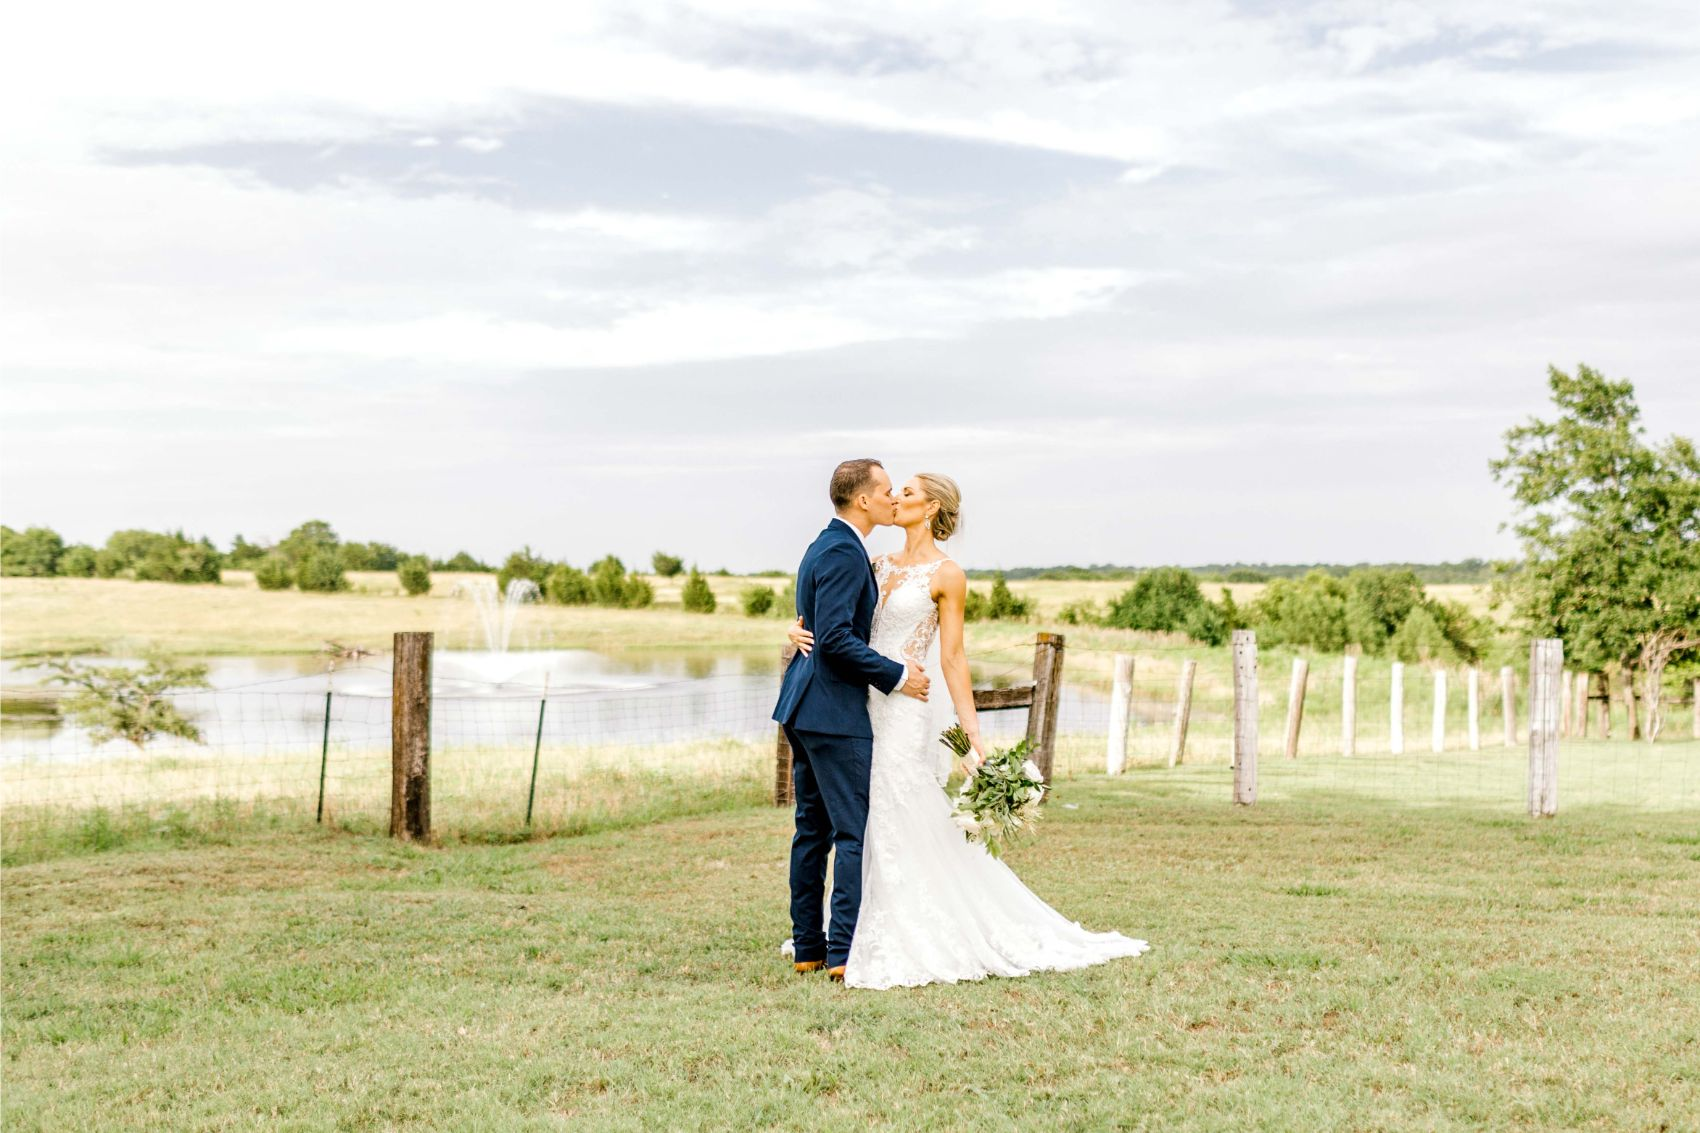 rustic-grace-estate-van-alstyne-wedding-06.22.19-36.jpg